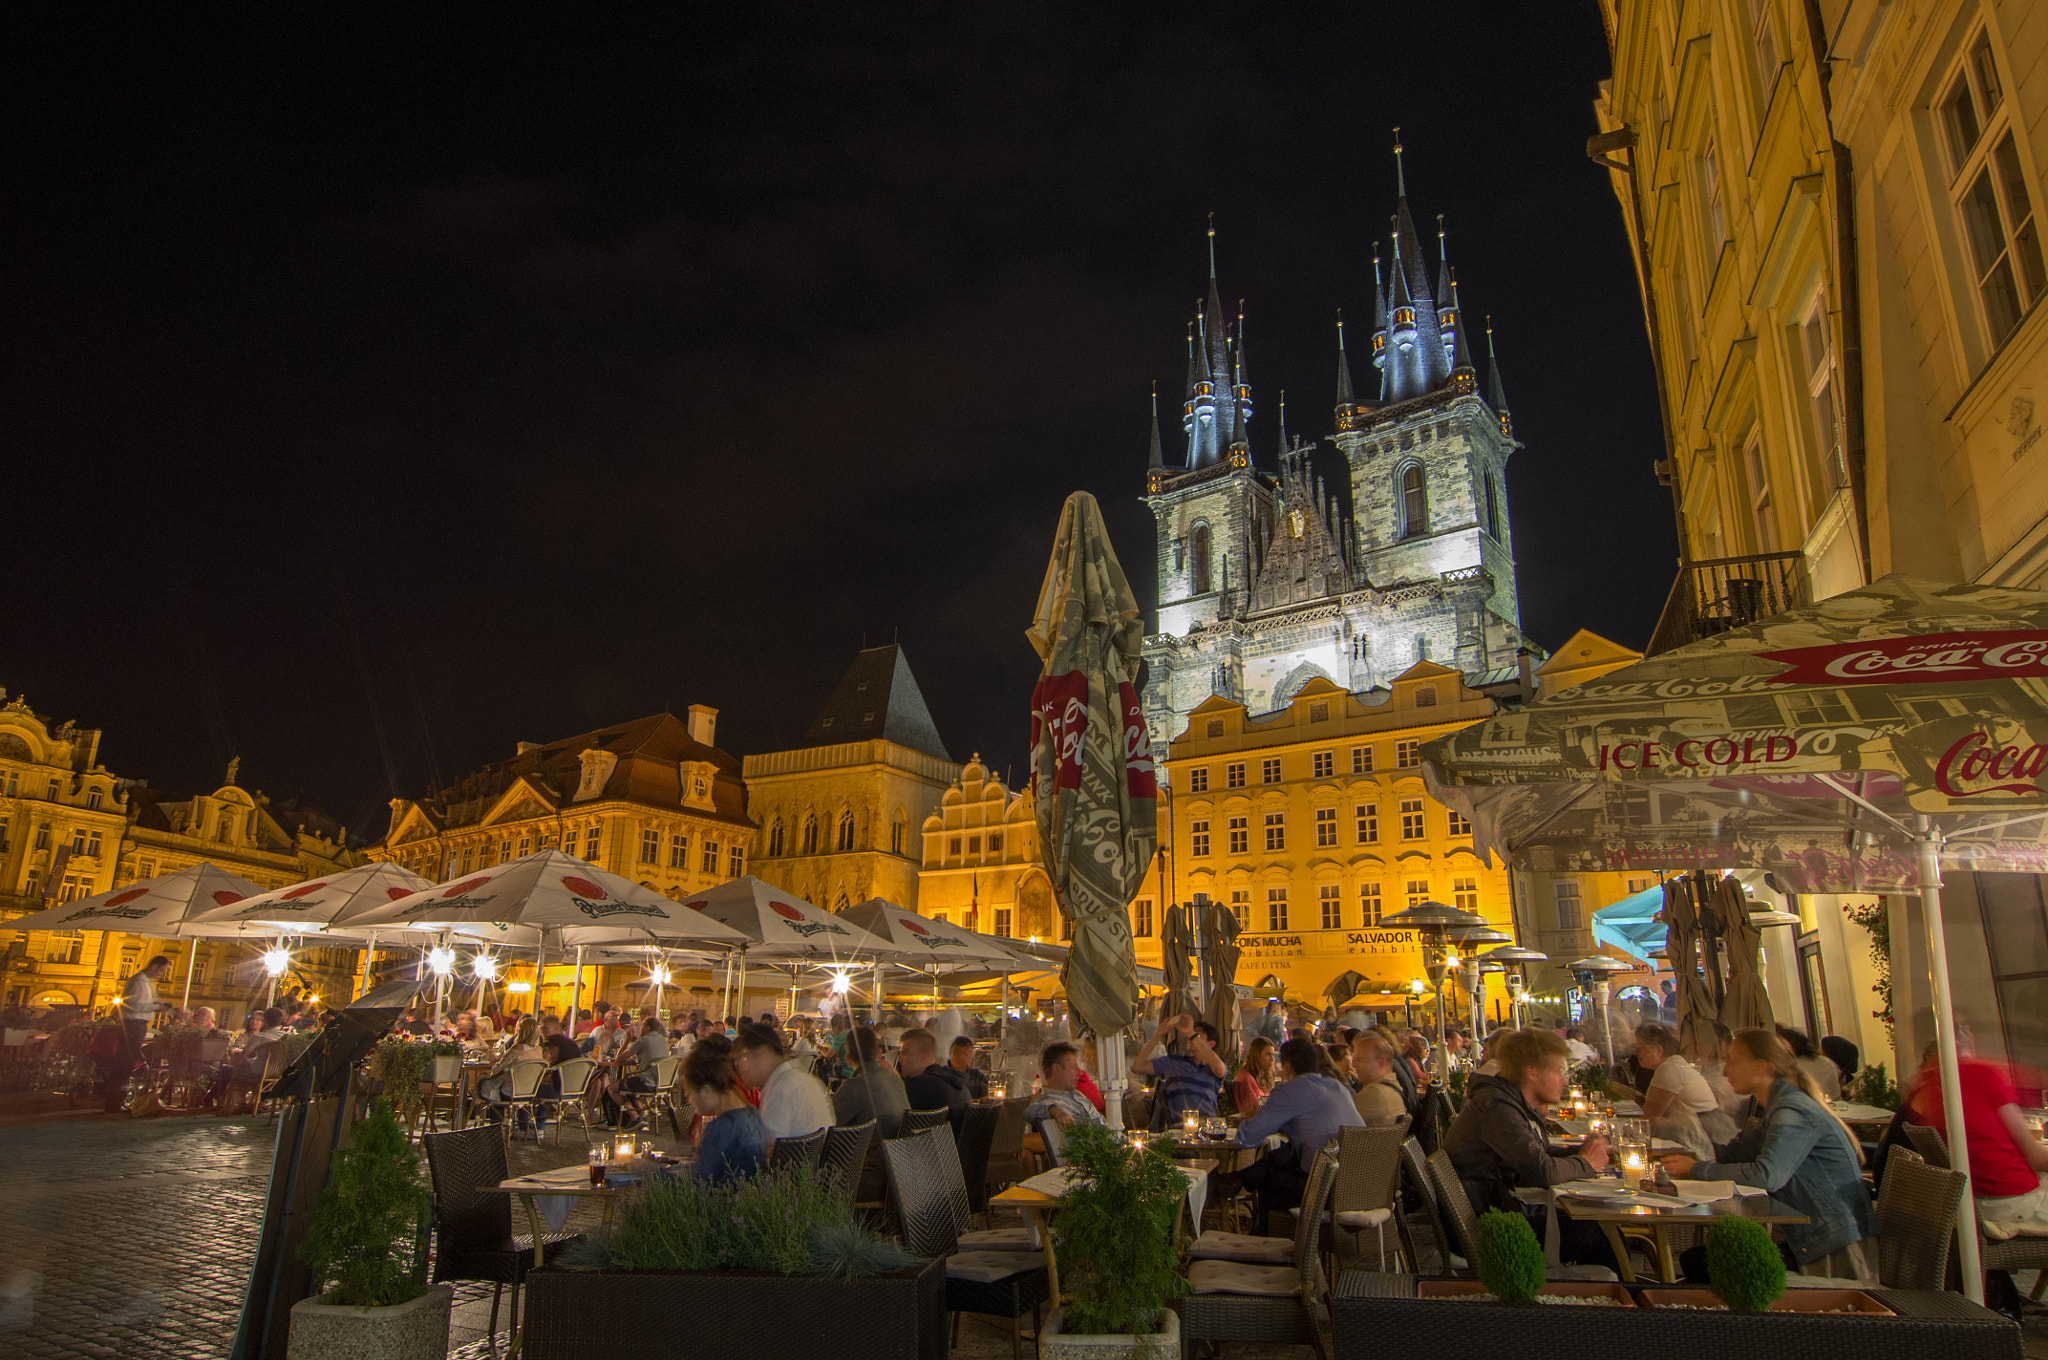 Photograph Praha at nigth by Endika Montejo on 500px